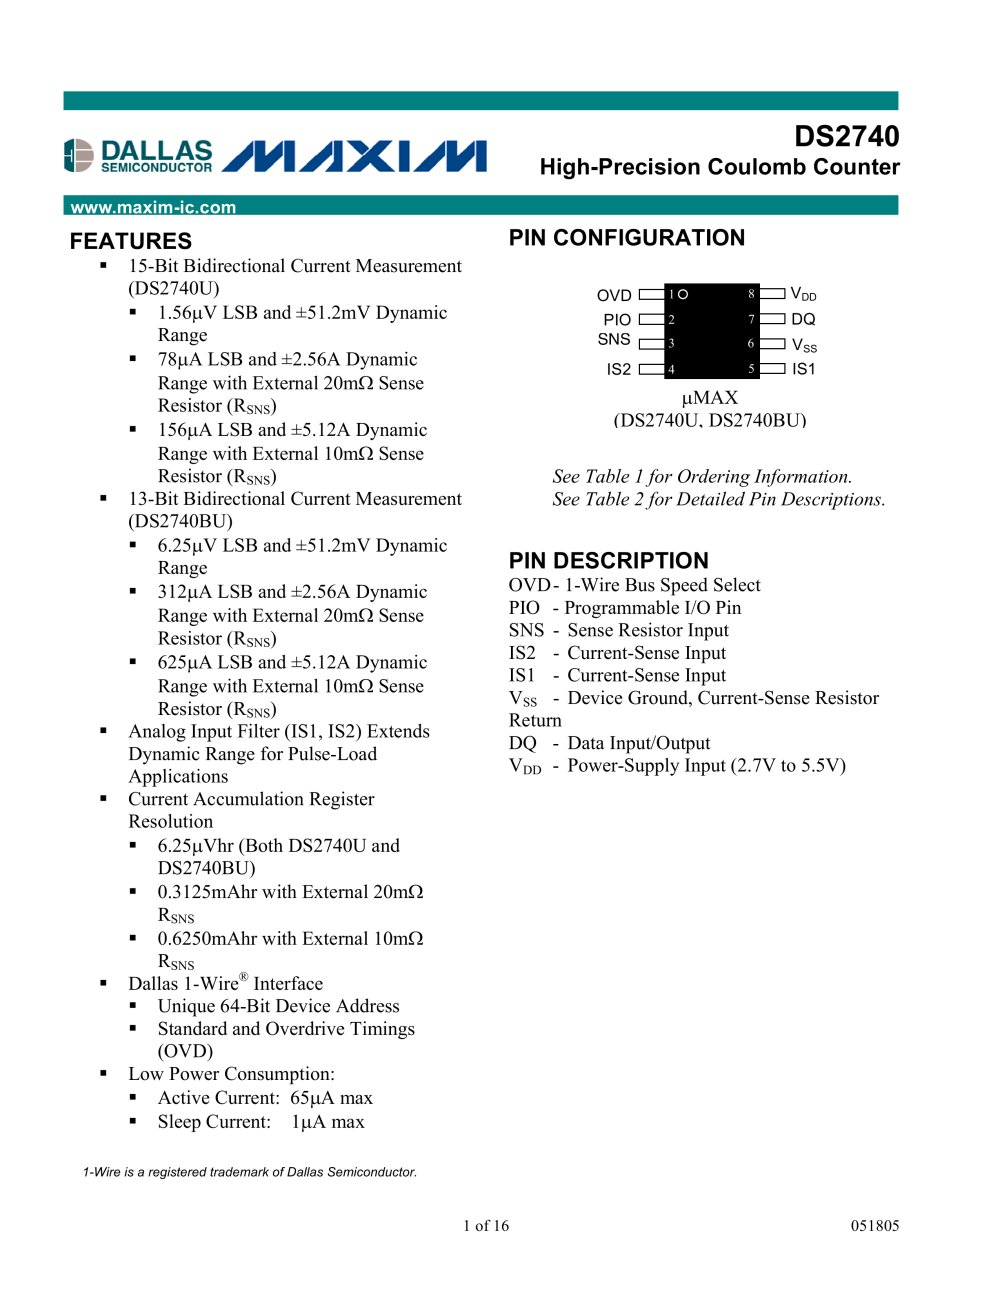 High-Precision Coulomb Counter - Maxim Integrated - PDF Catalogue ...